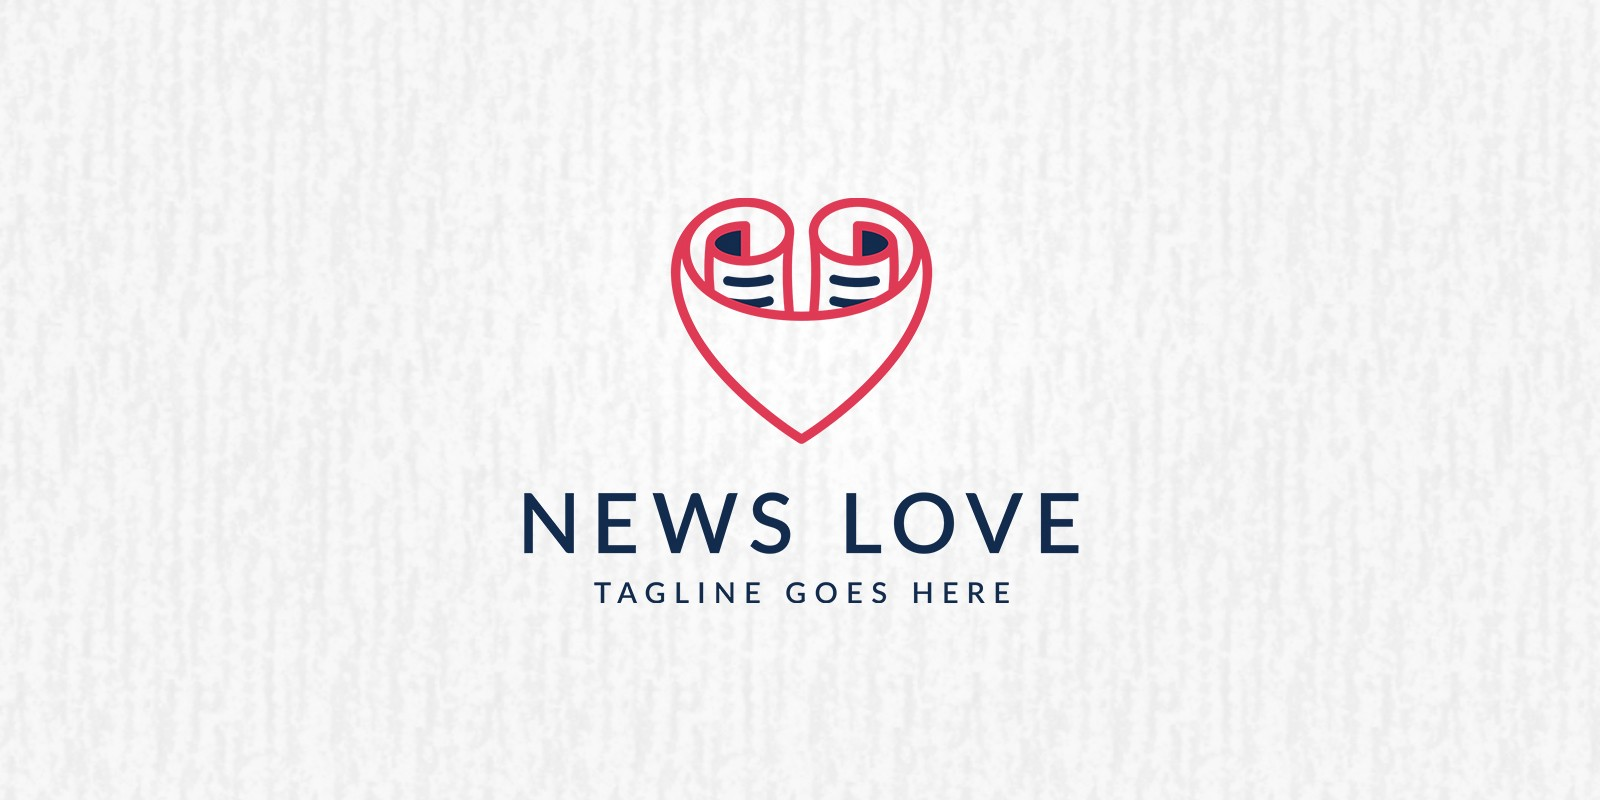 Love News - Logo Template - Media Logo Templates | Codester